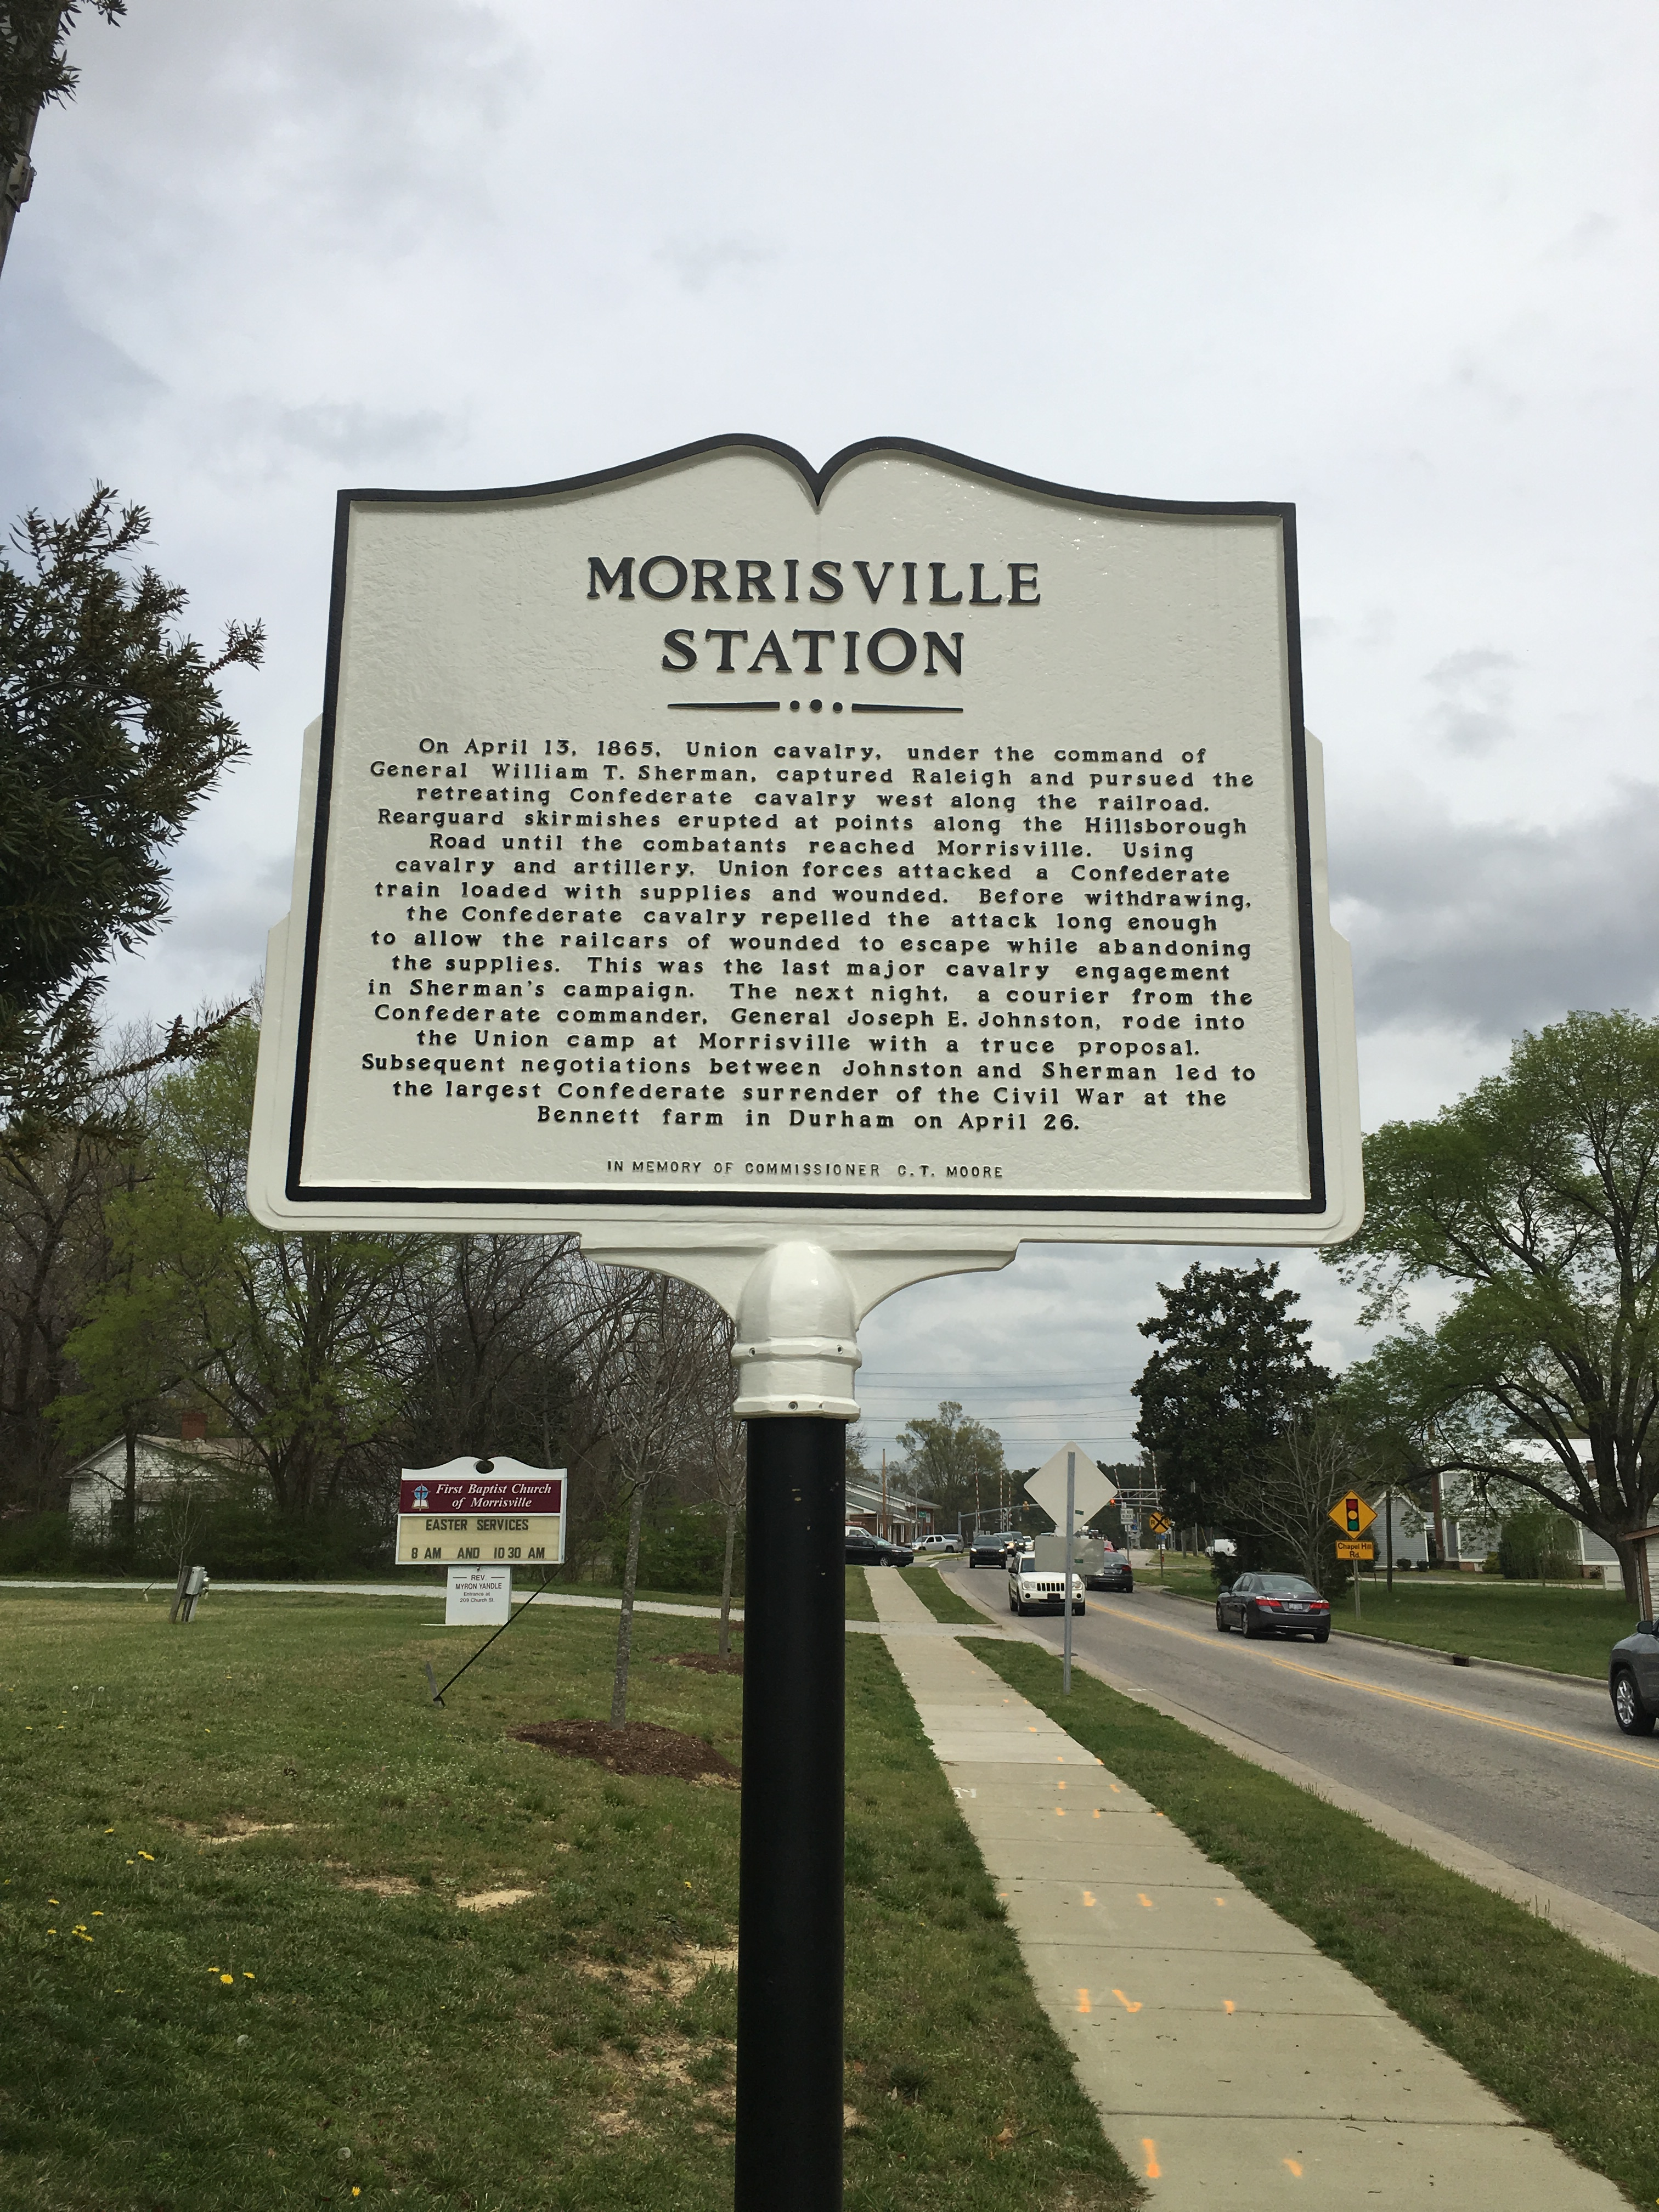 This historic marker is located next to City Hall and tells the history of Union soldiers occupy Morrisville towards the end of the war.